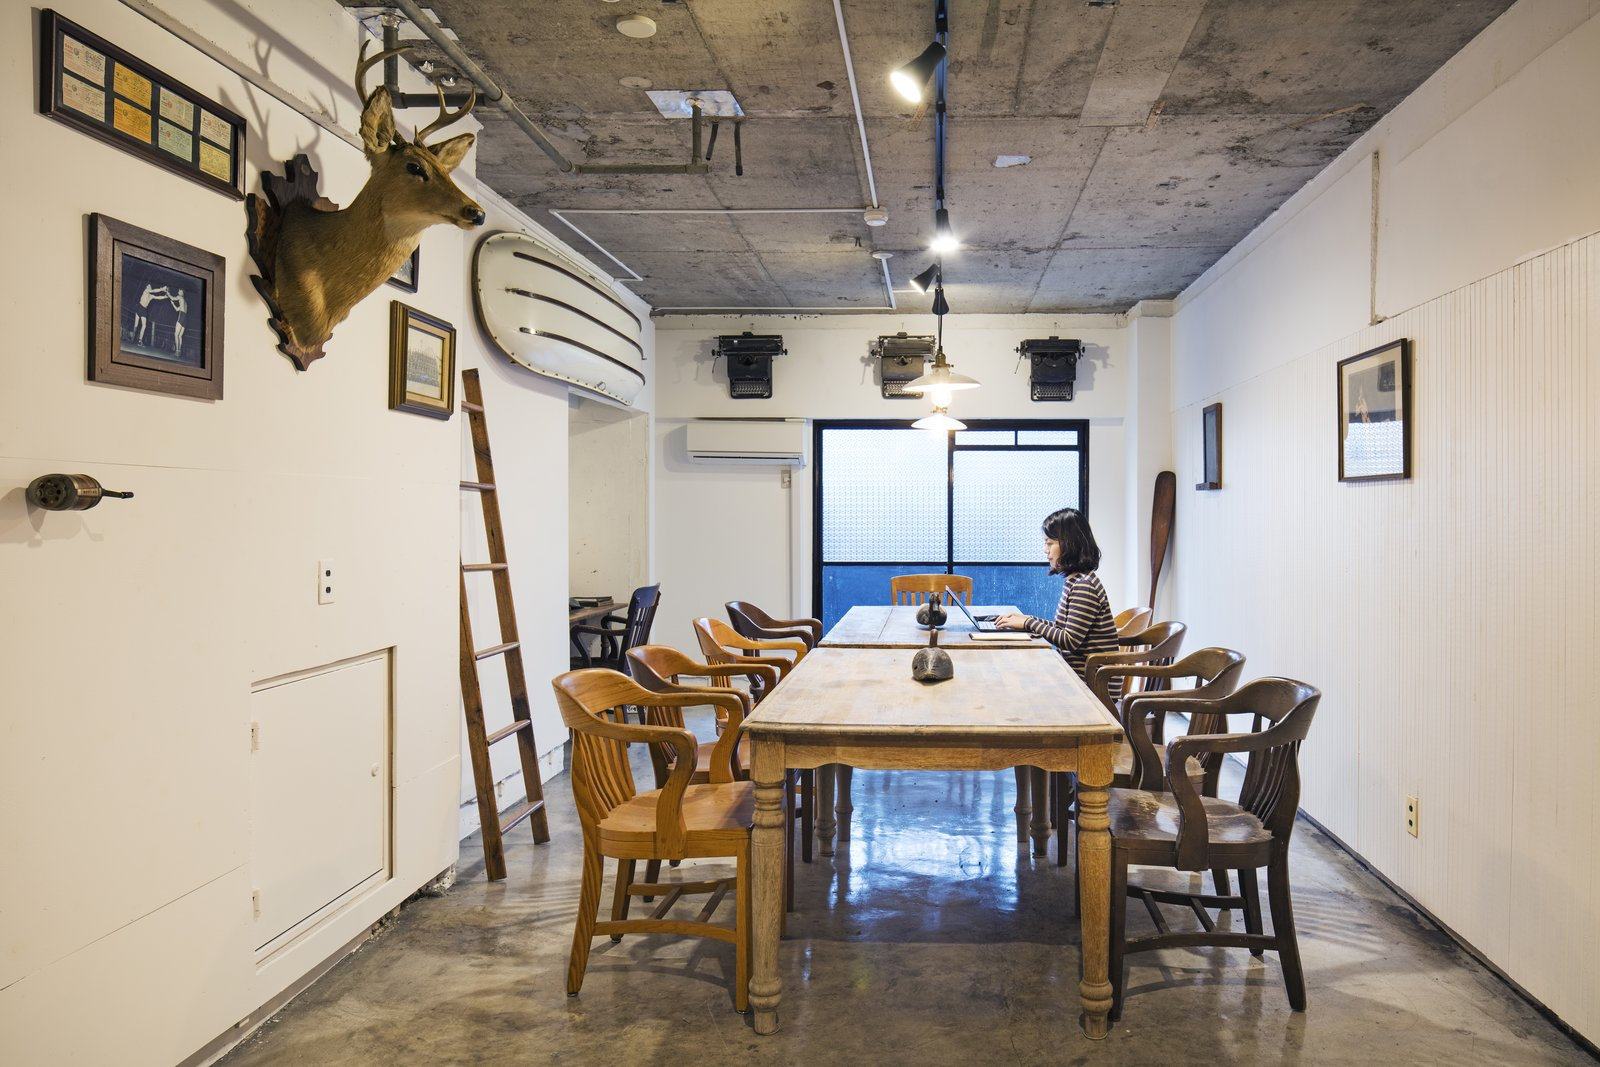 Forget Coworkingu2014These Coliving Spaces Let You Travel The World For $1,800  A Month